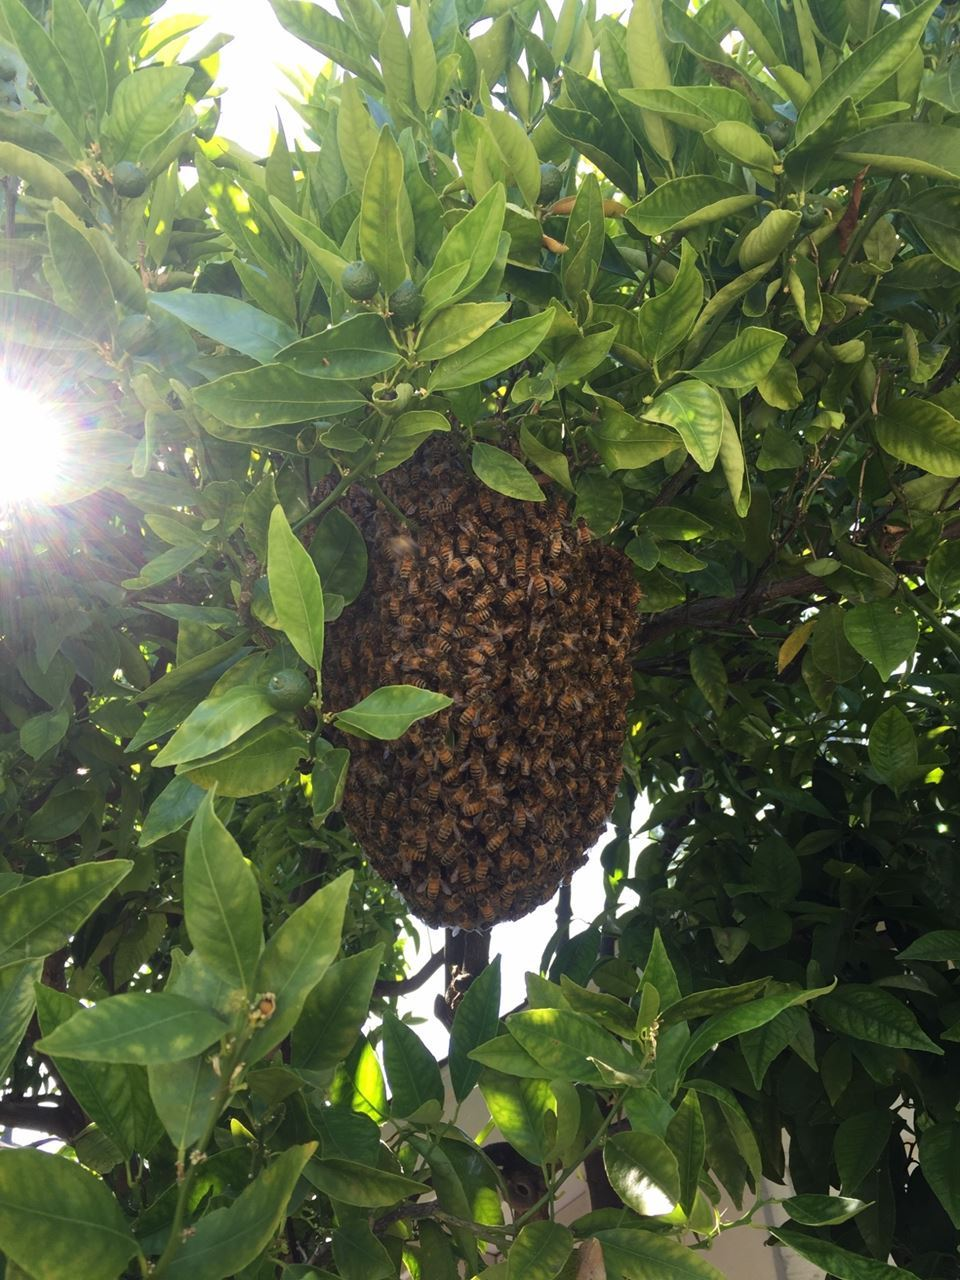 A Perfect Swarm.